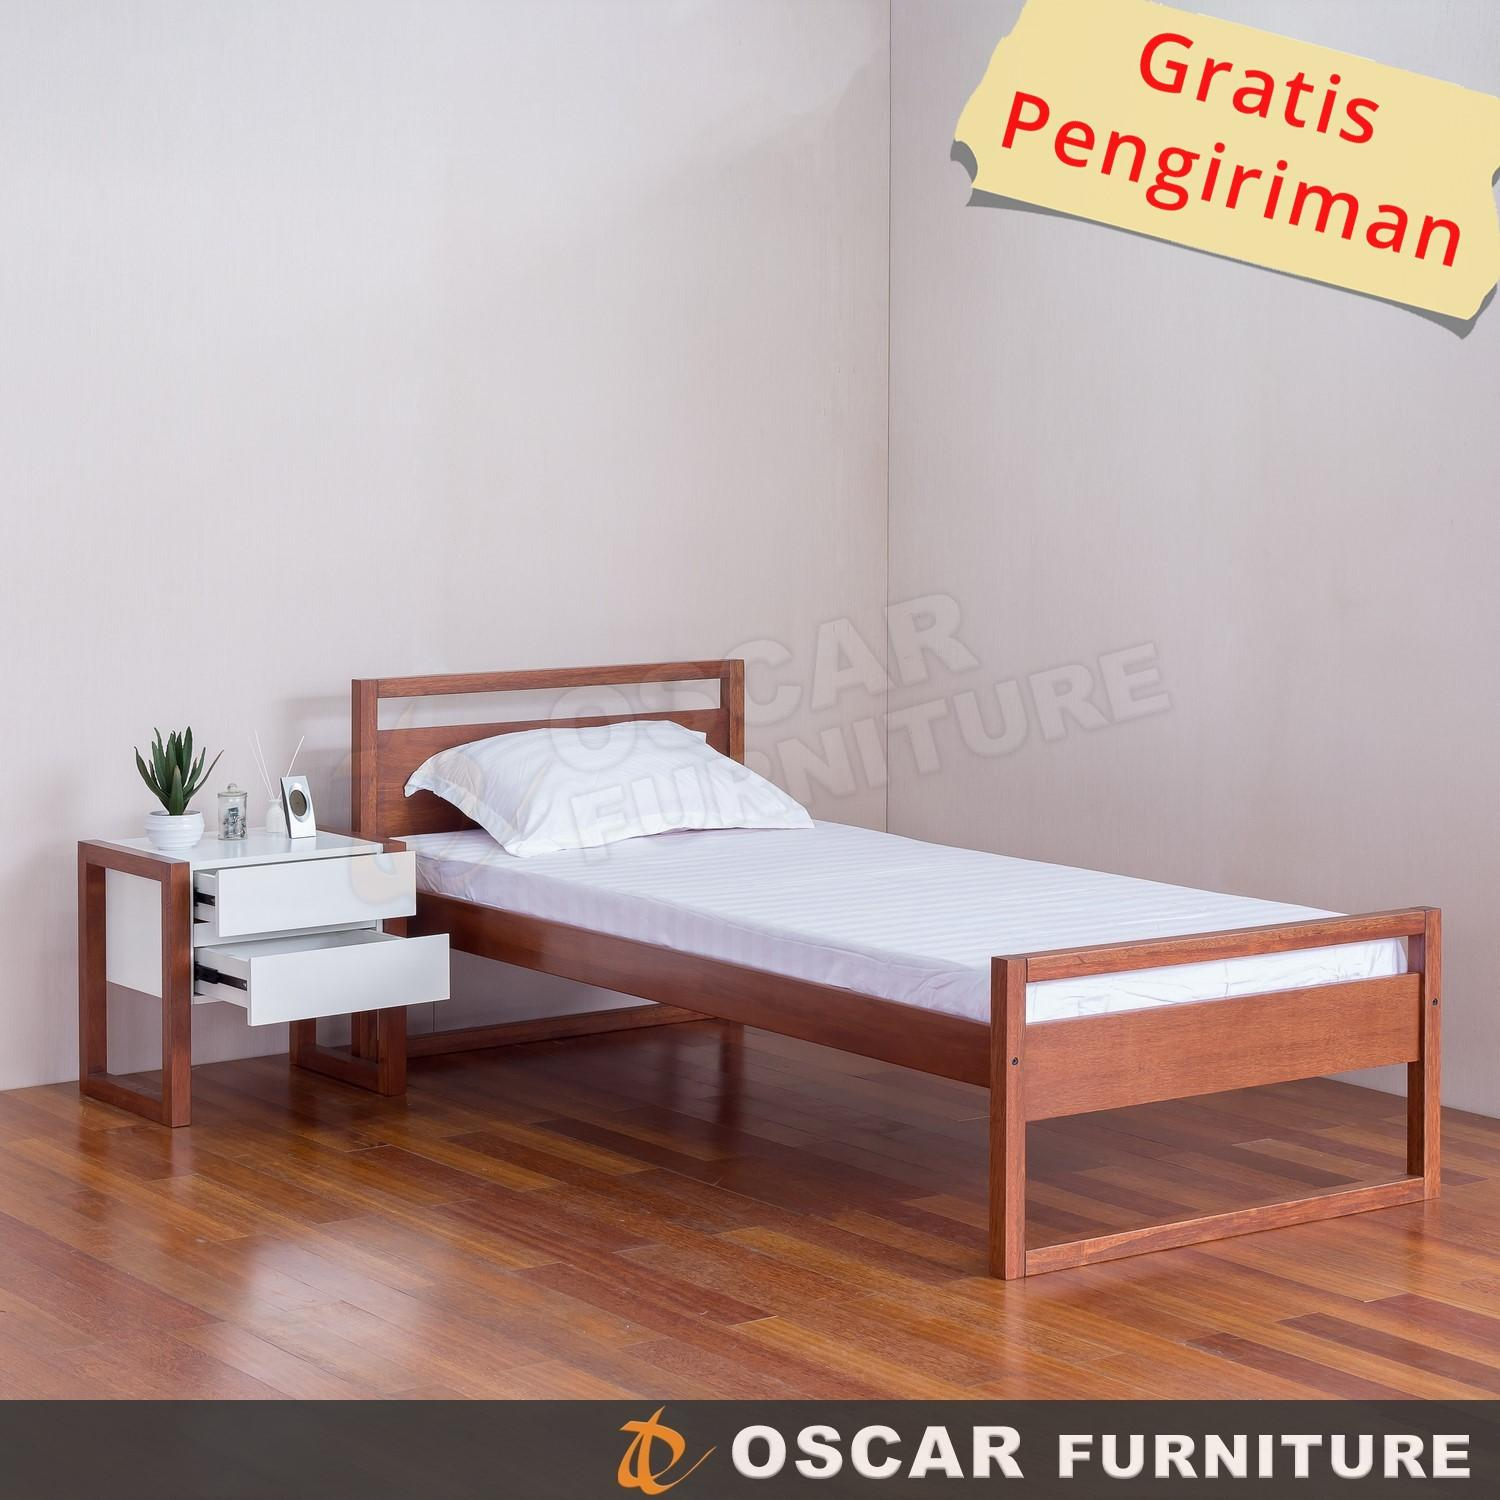 Oscar Furniture - Tempat Tidur Minimalis 90 X 200 (single) Seri Forte By Oscar Furniture.